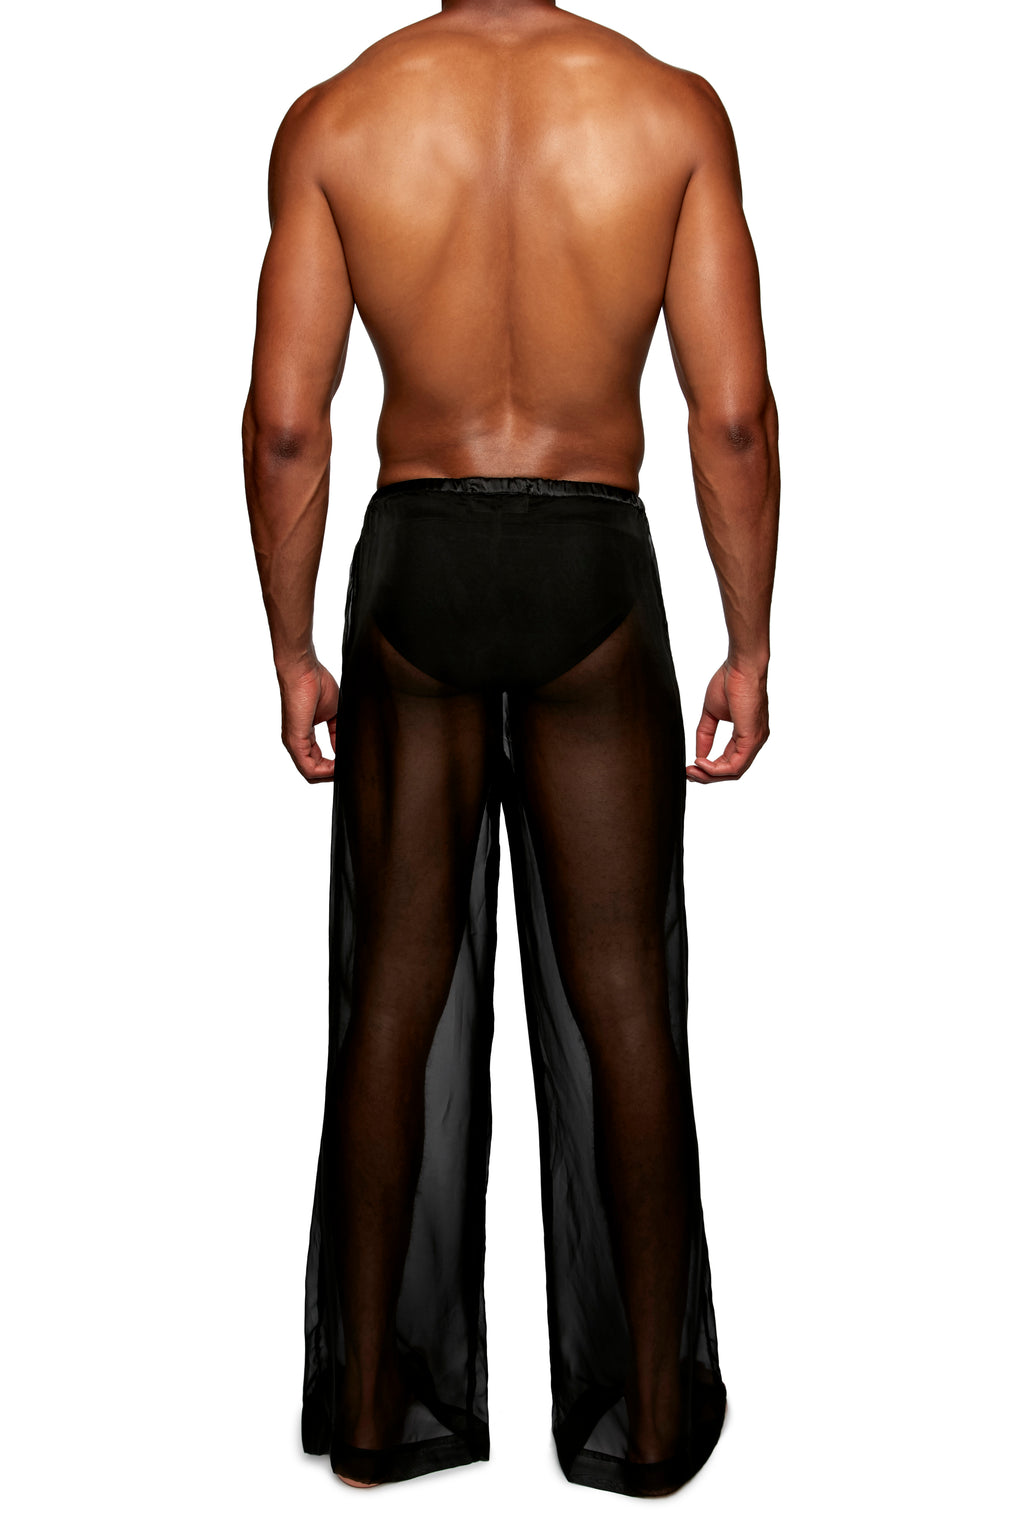 DRAWSTRING PANT in CHIFFON - MENAGERIE Intimates MENS Lingerie